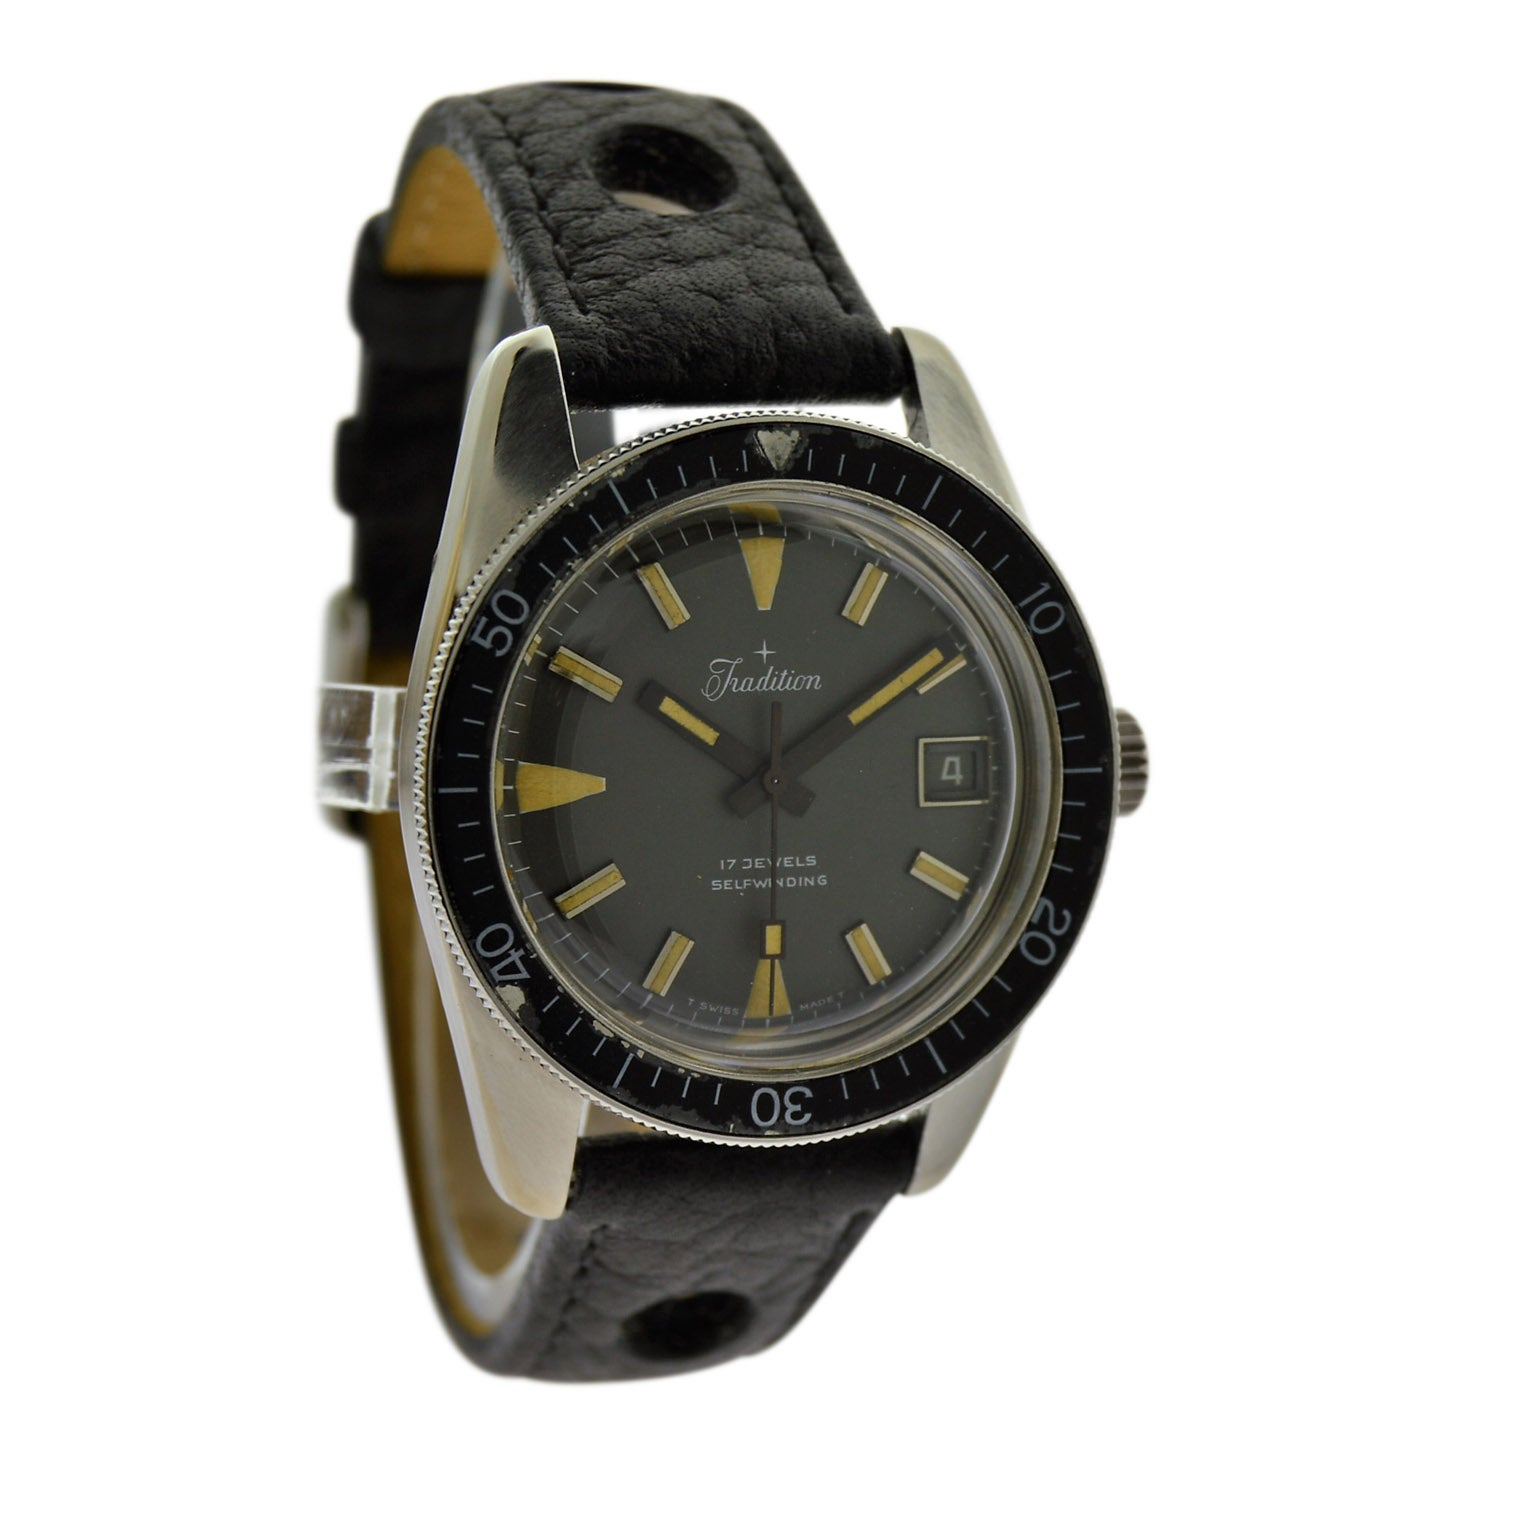 Tradition Stainless Steel Sport Style Automatic Wristwatch, circa 1960s